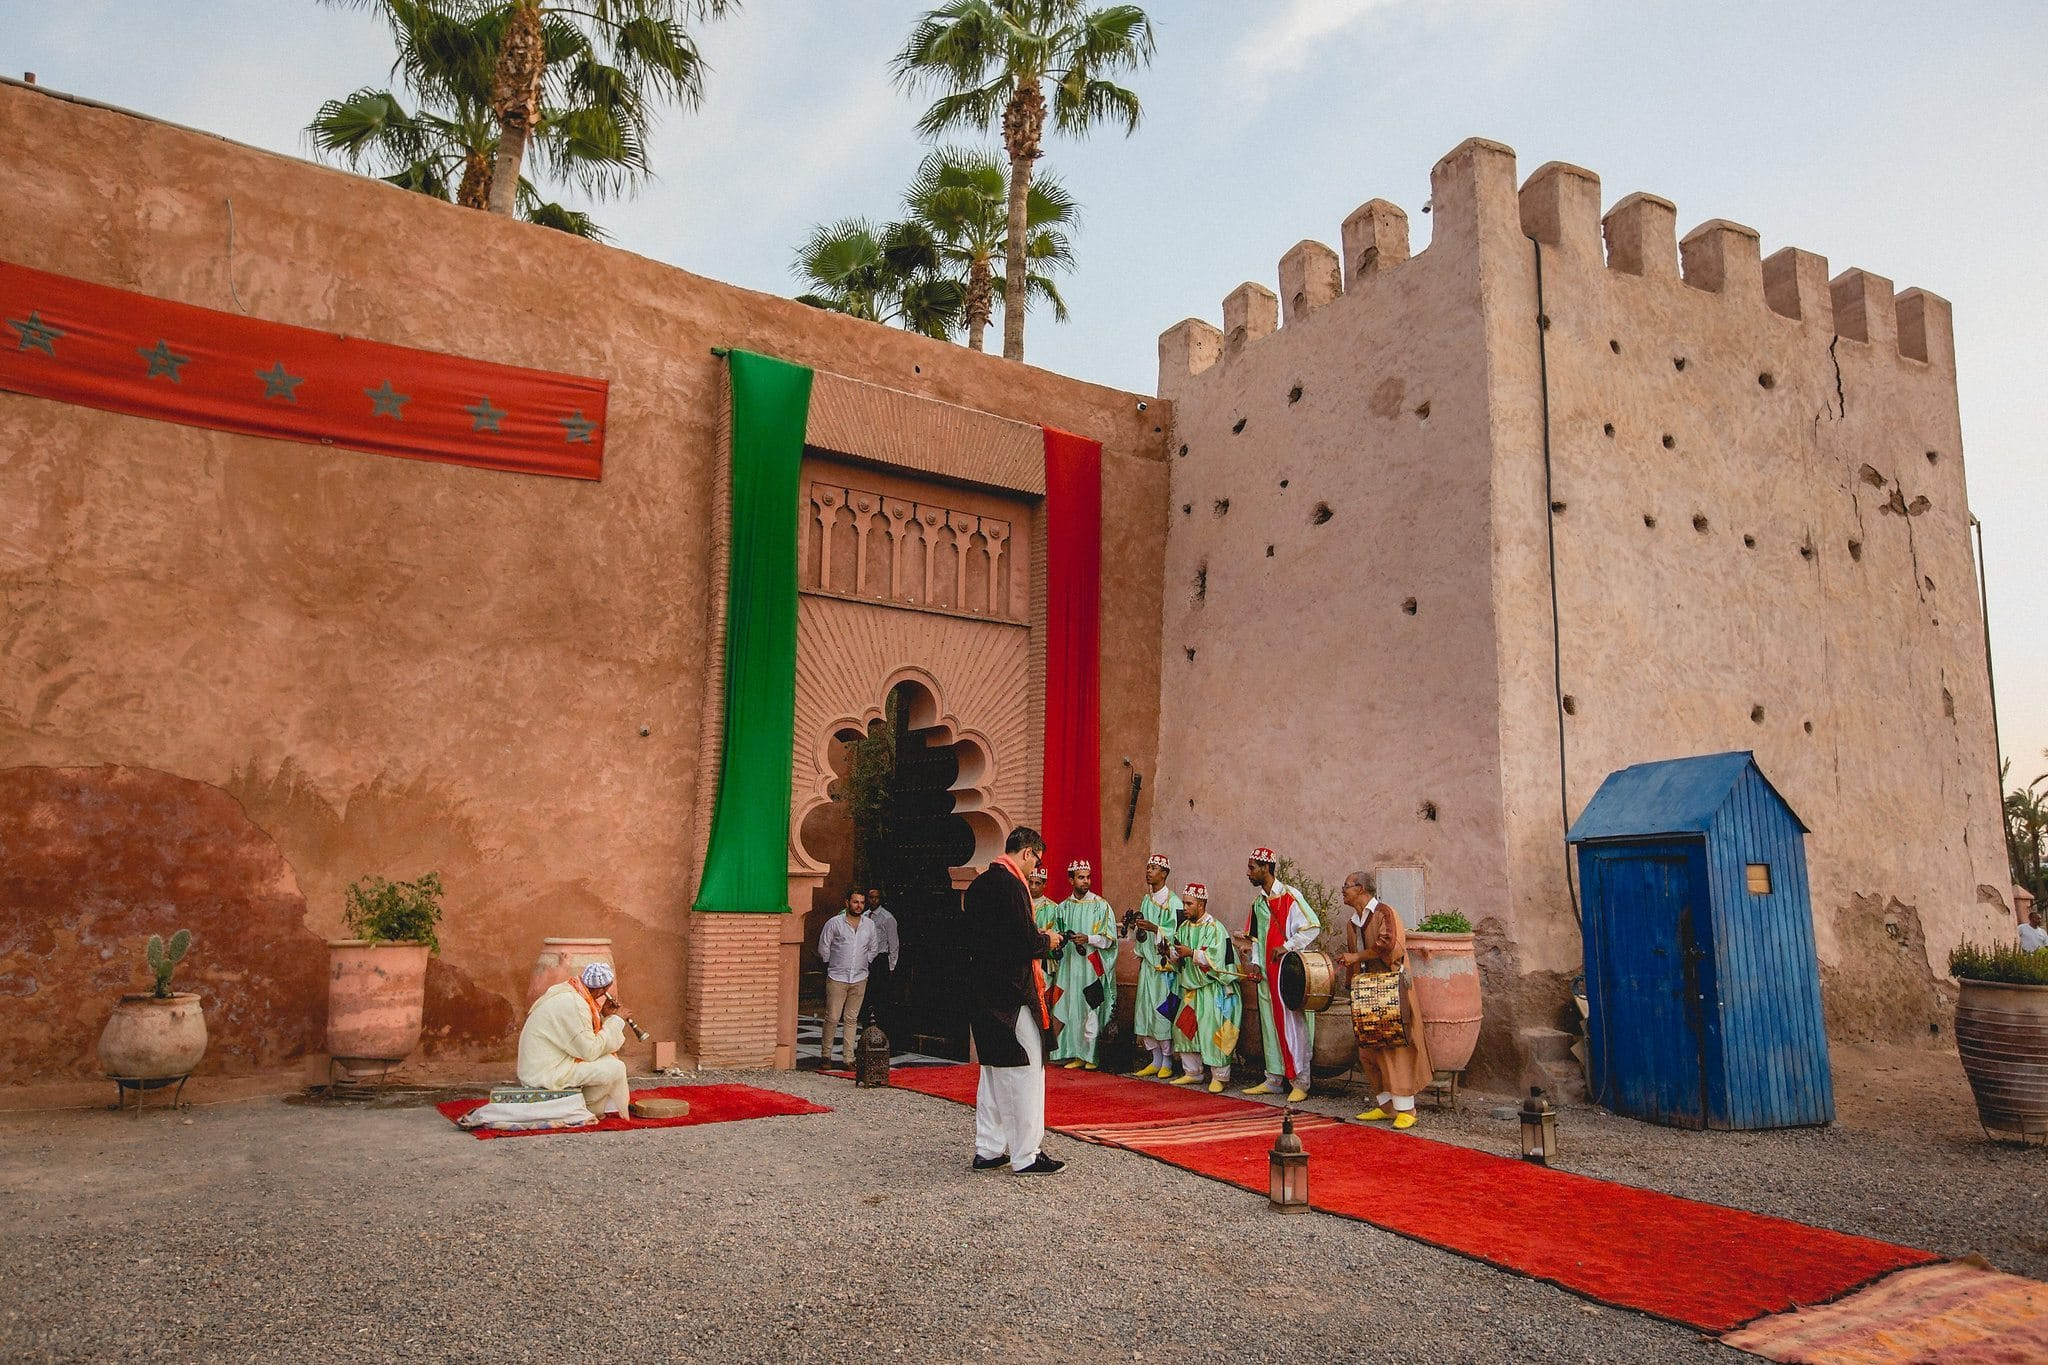 Palais Soleiman in Marrakech with red and green banners and palm trees in the back